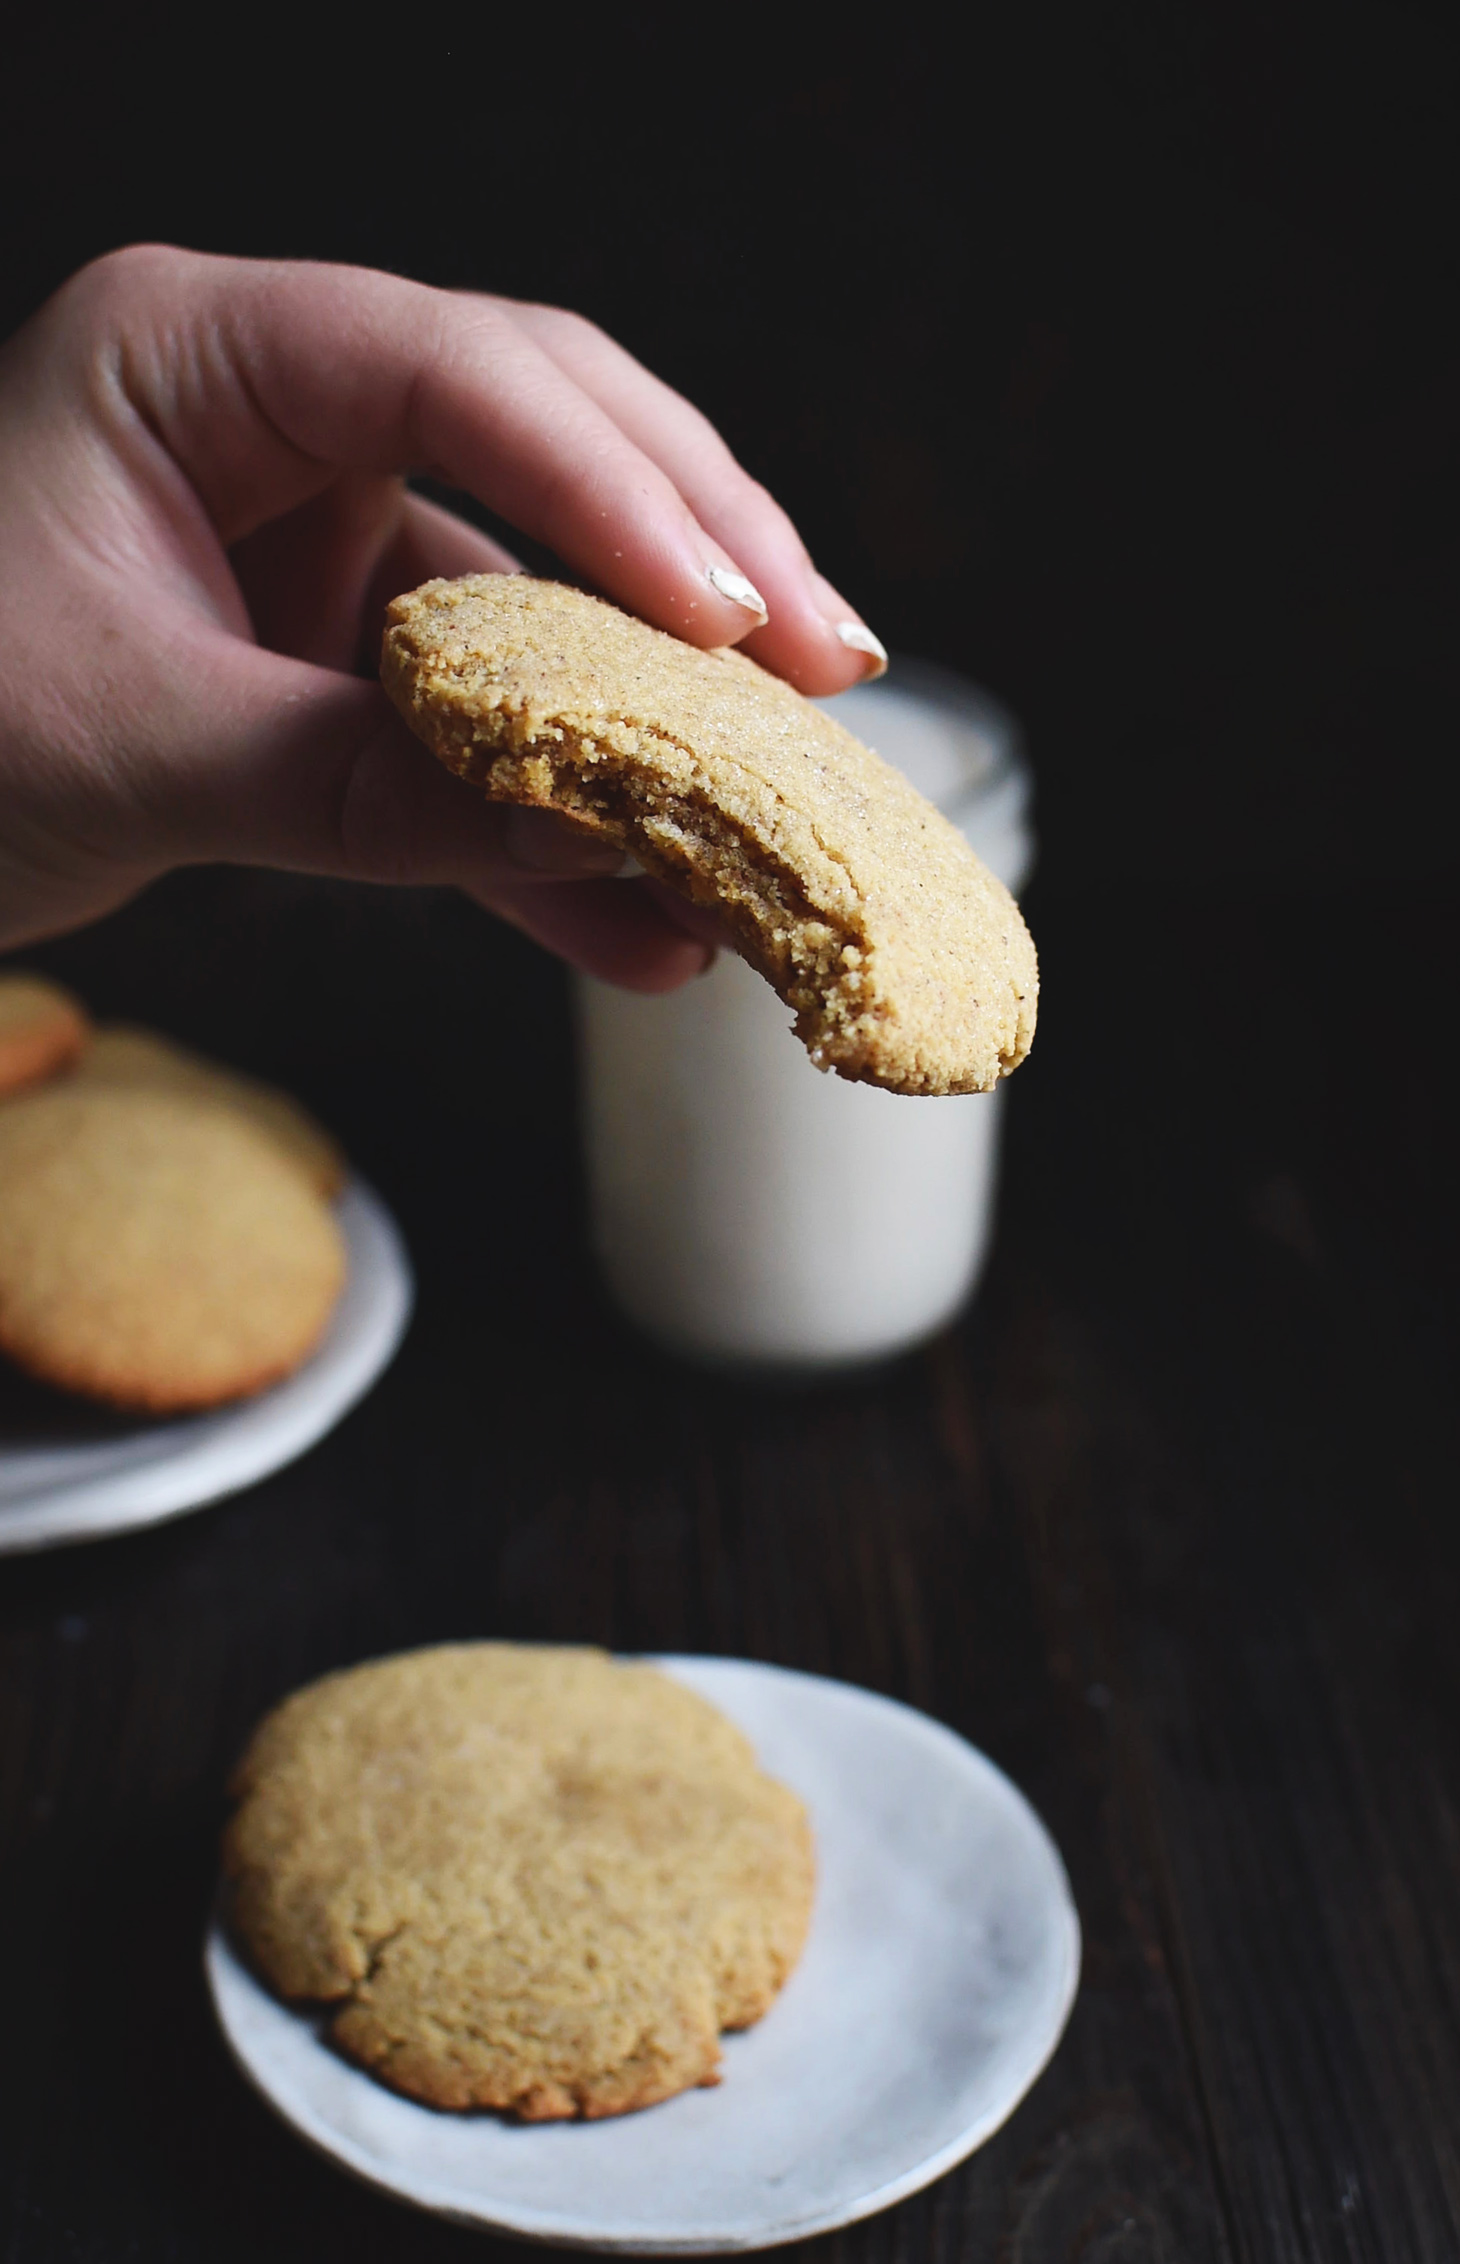 Low-Carb Molasses Gingerbread Cookie with a bite taken.